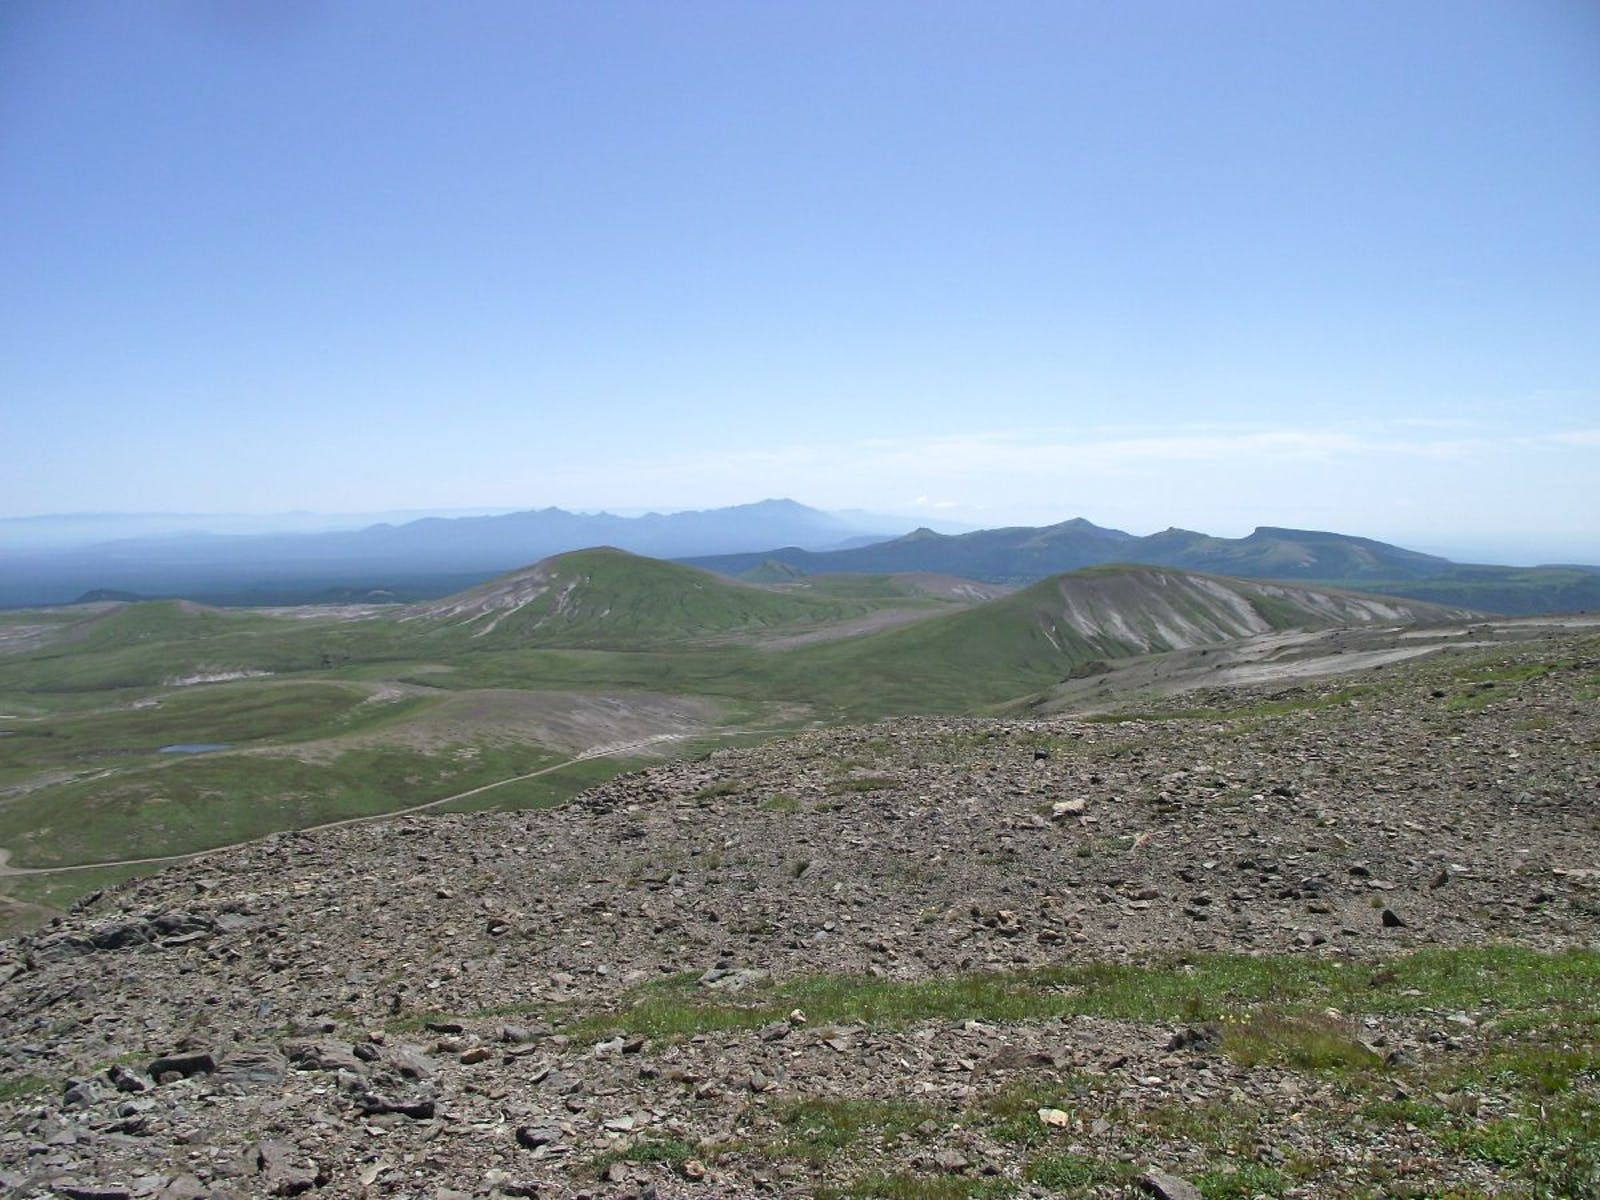 Changbai Mountains Mixed Forests